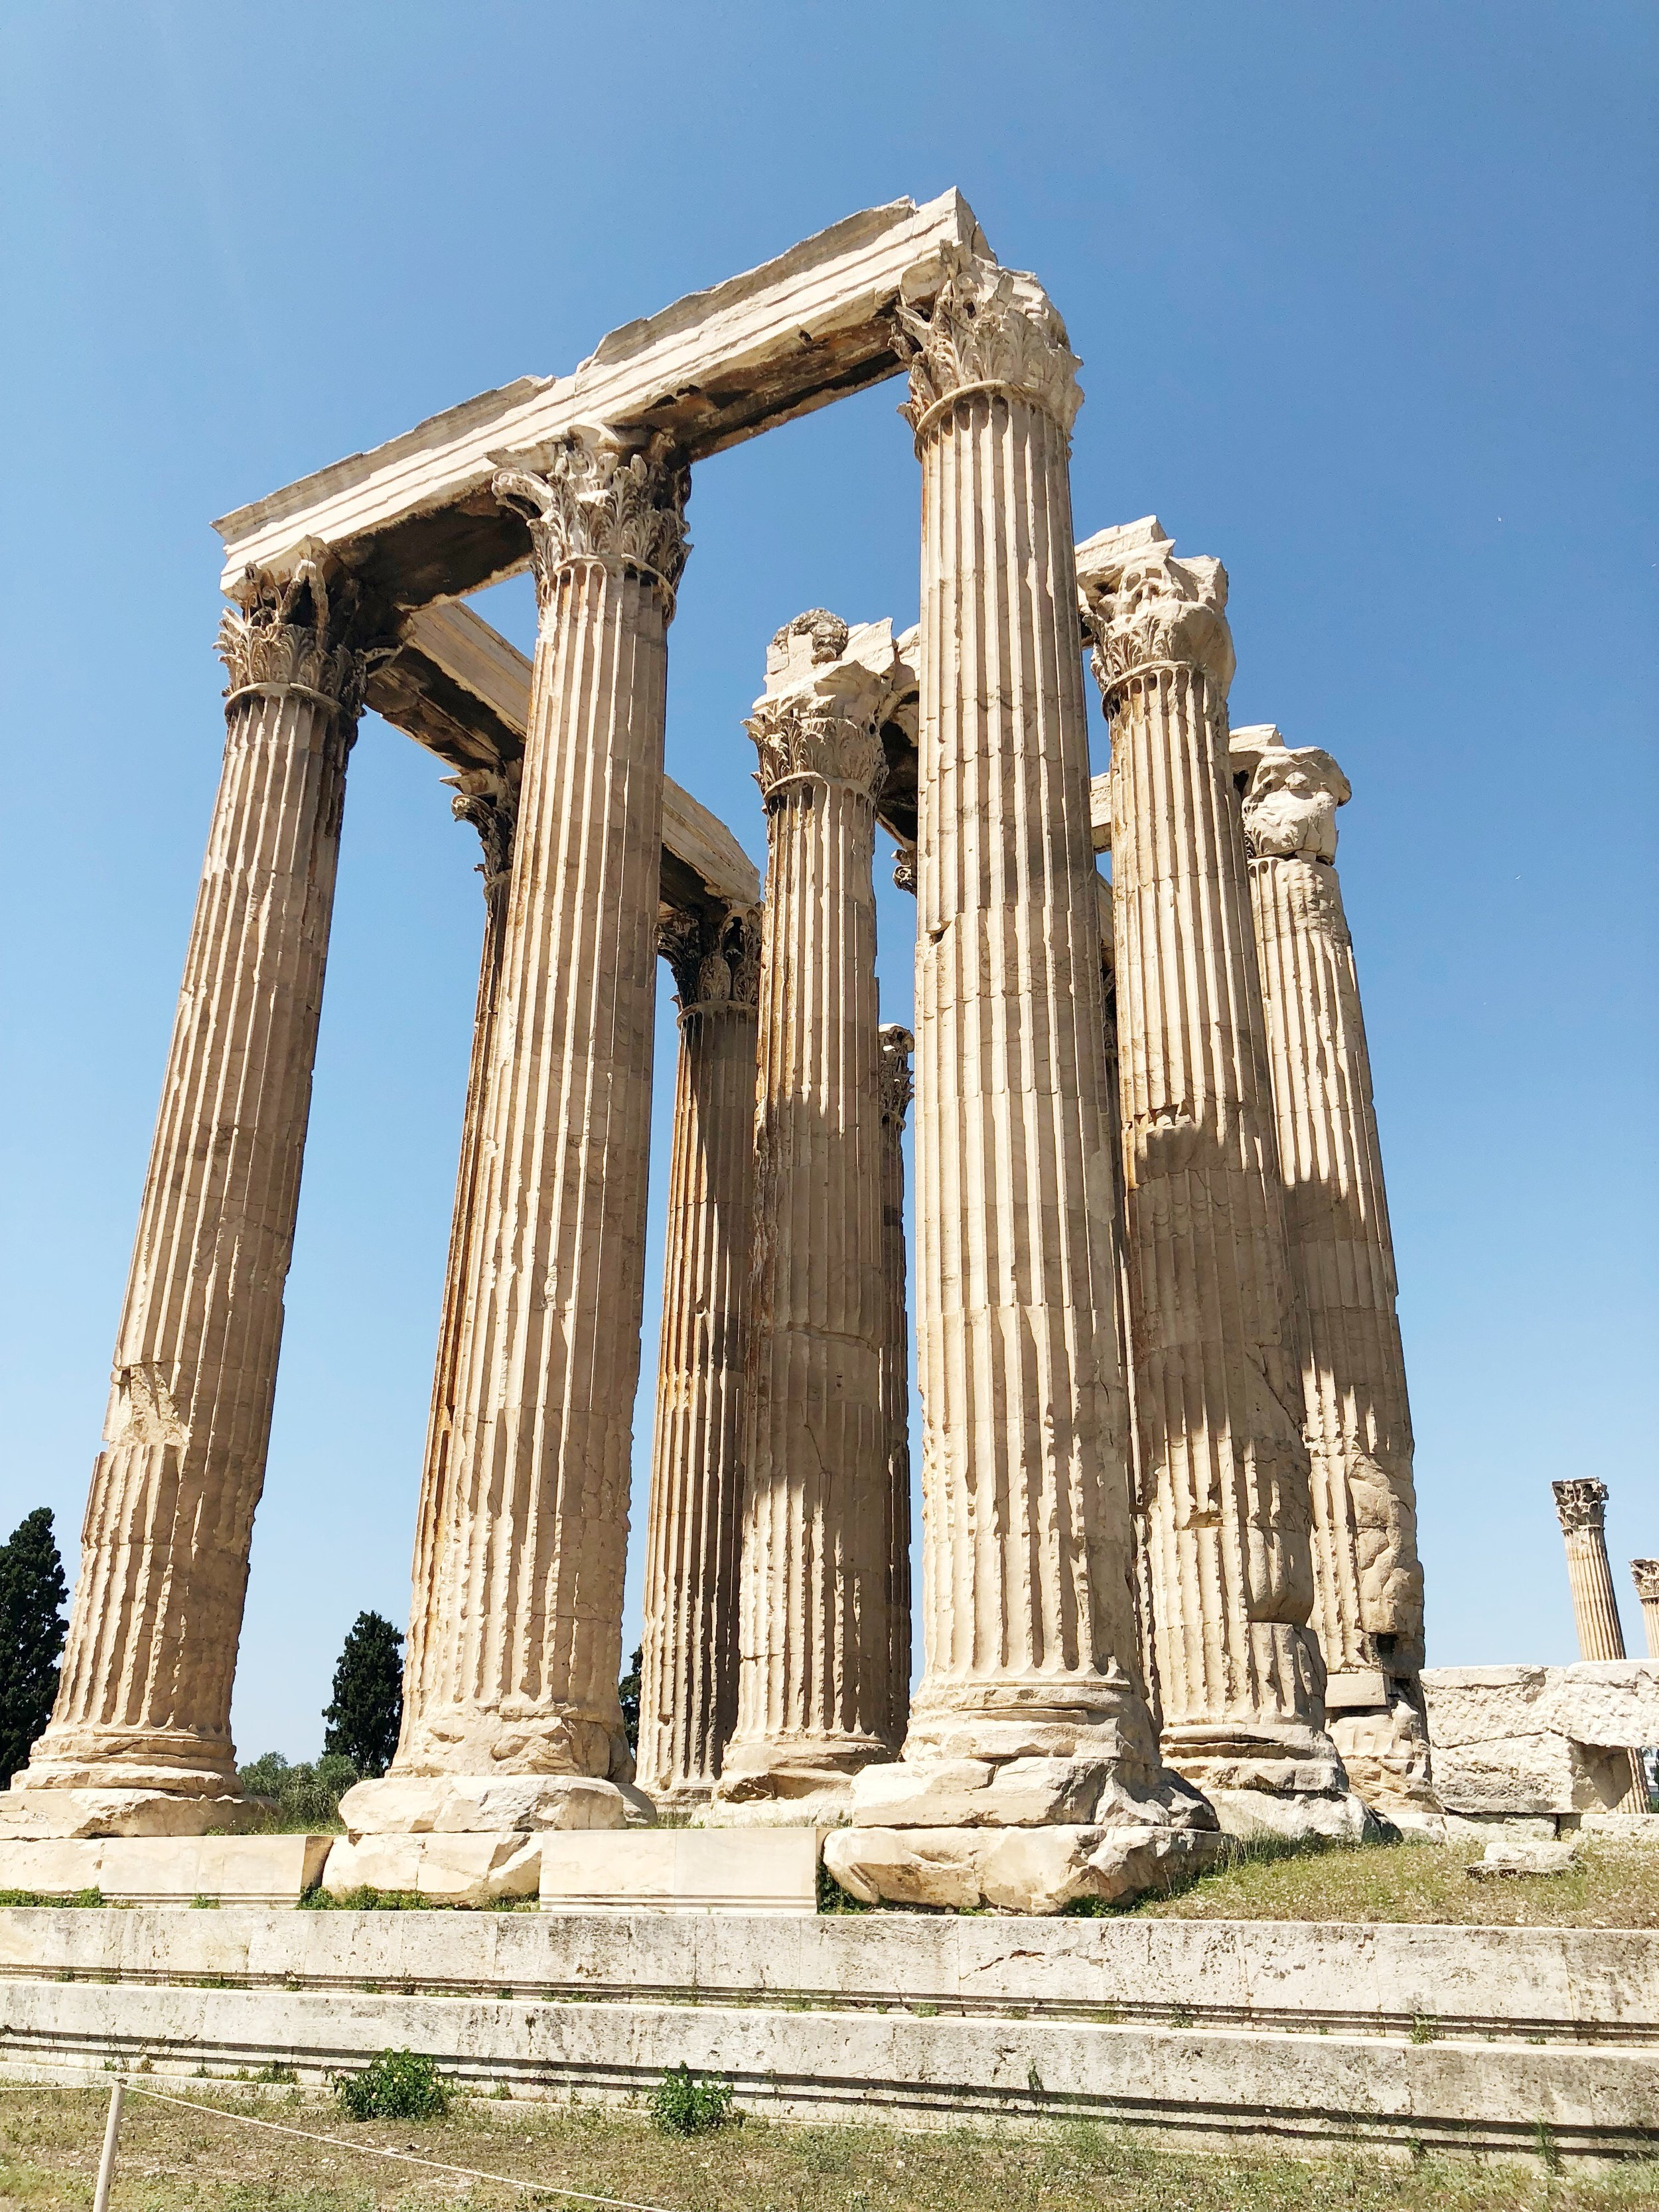 The Temple of Zeus in Athens, Greece.